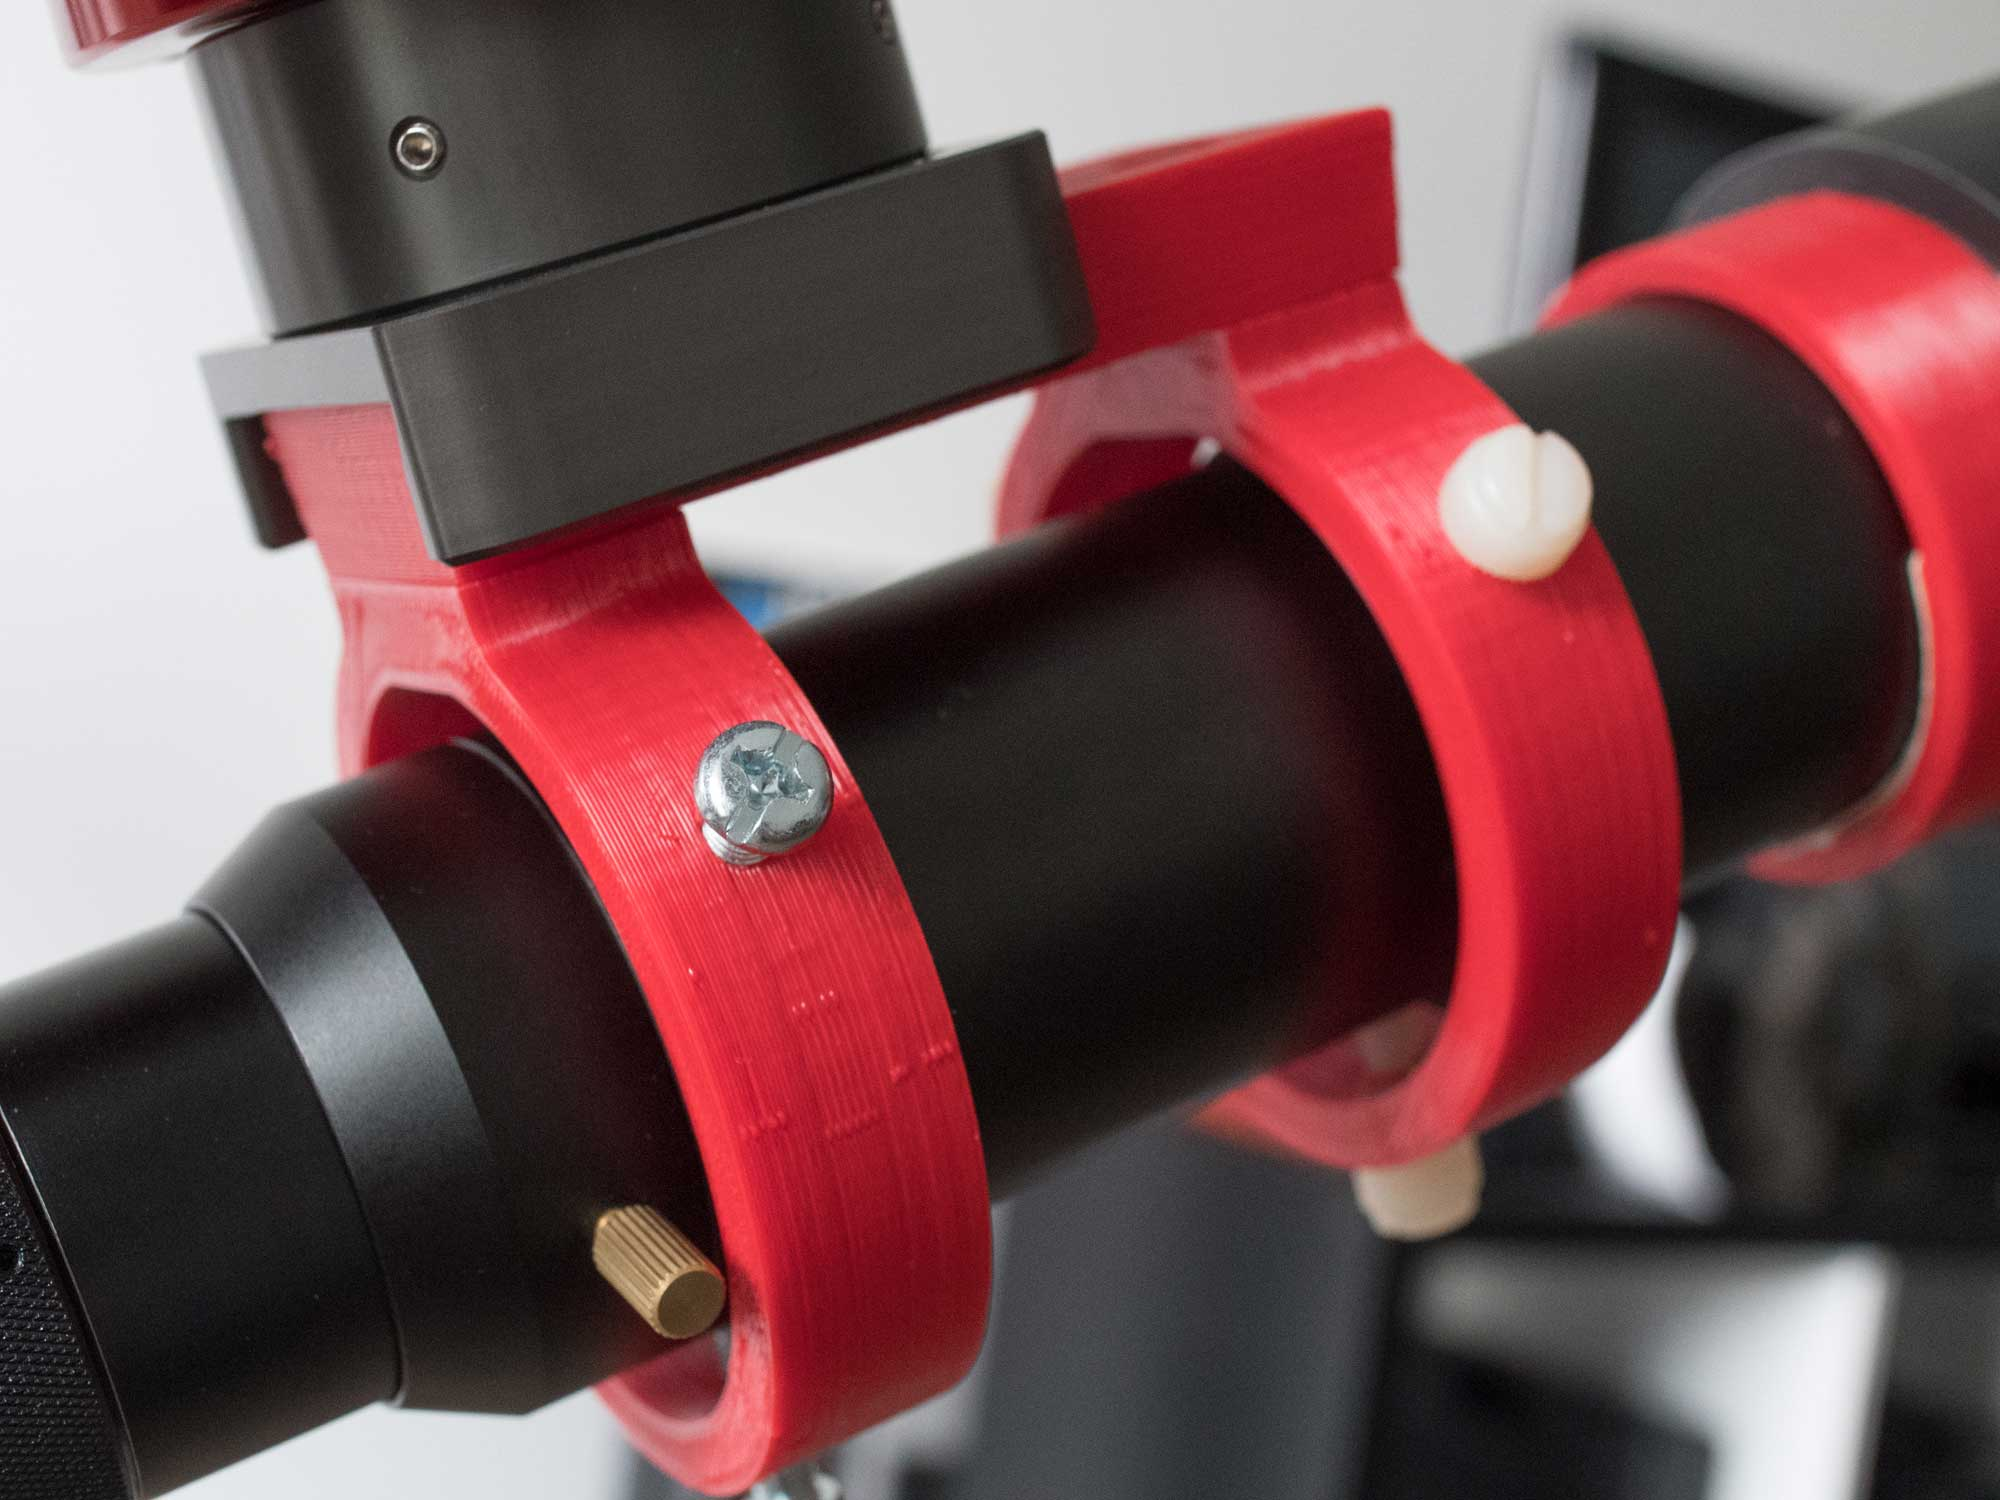 50mm guidescope for the Avalon Instruments M-zero mount